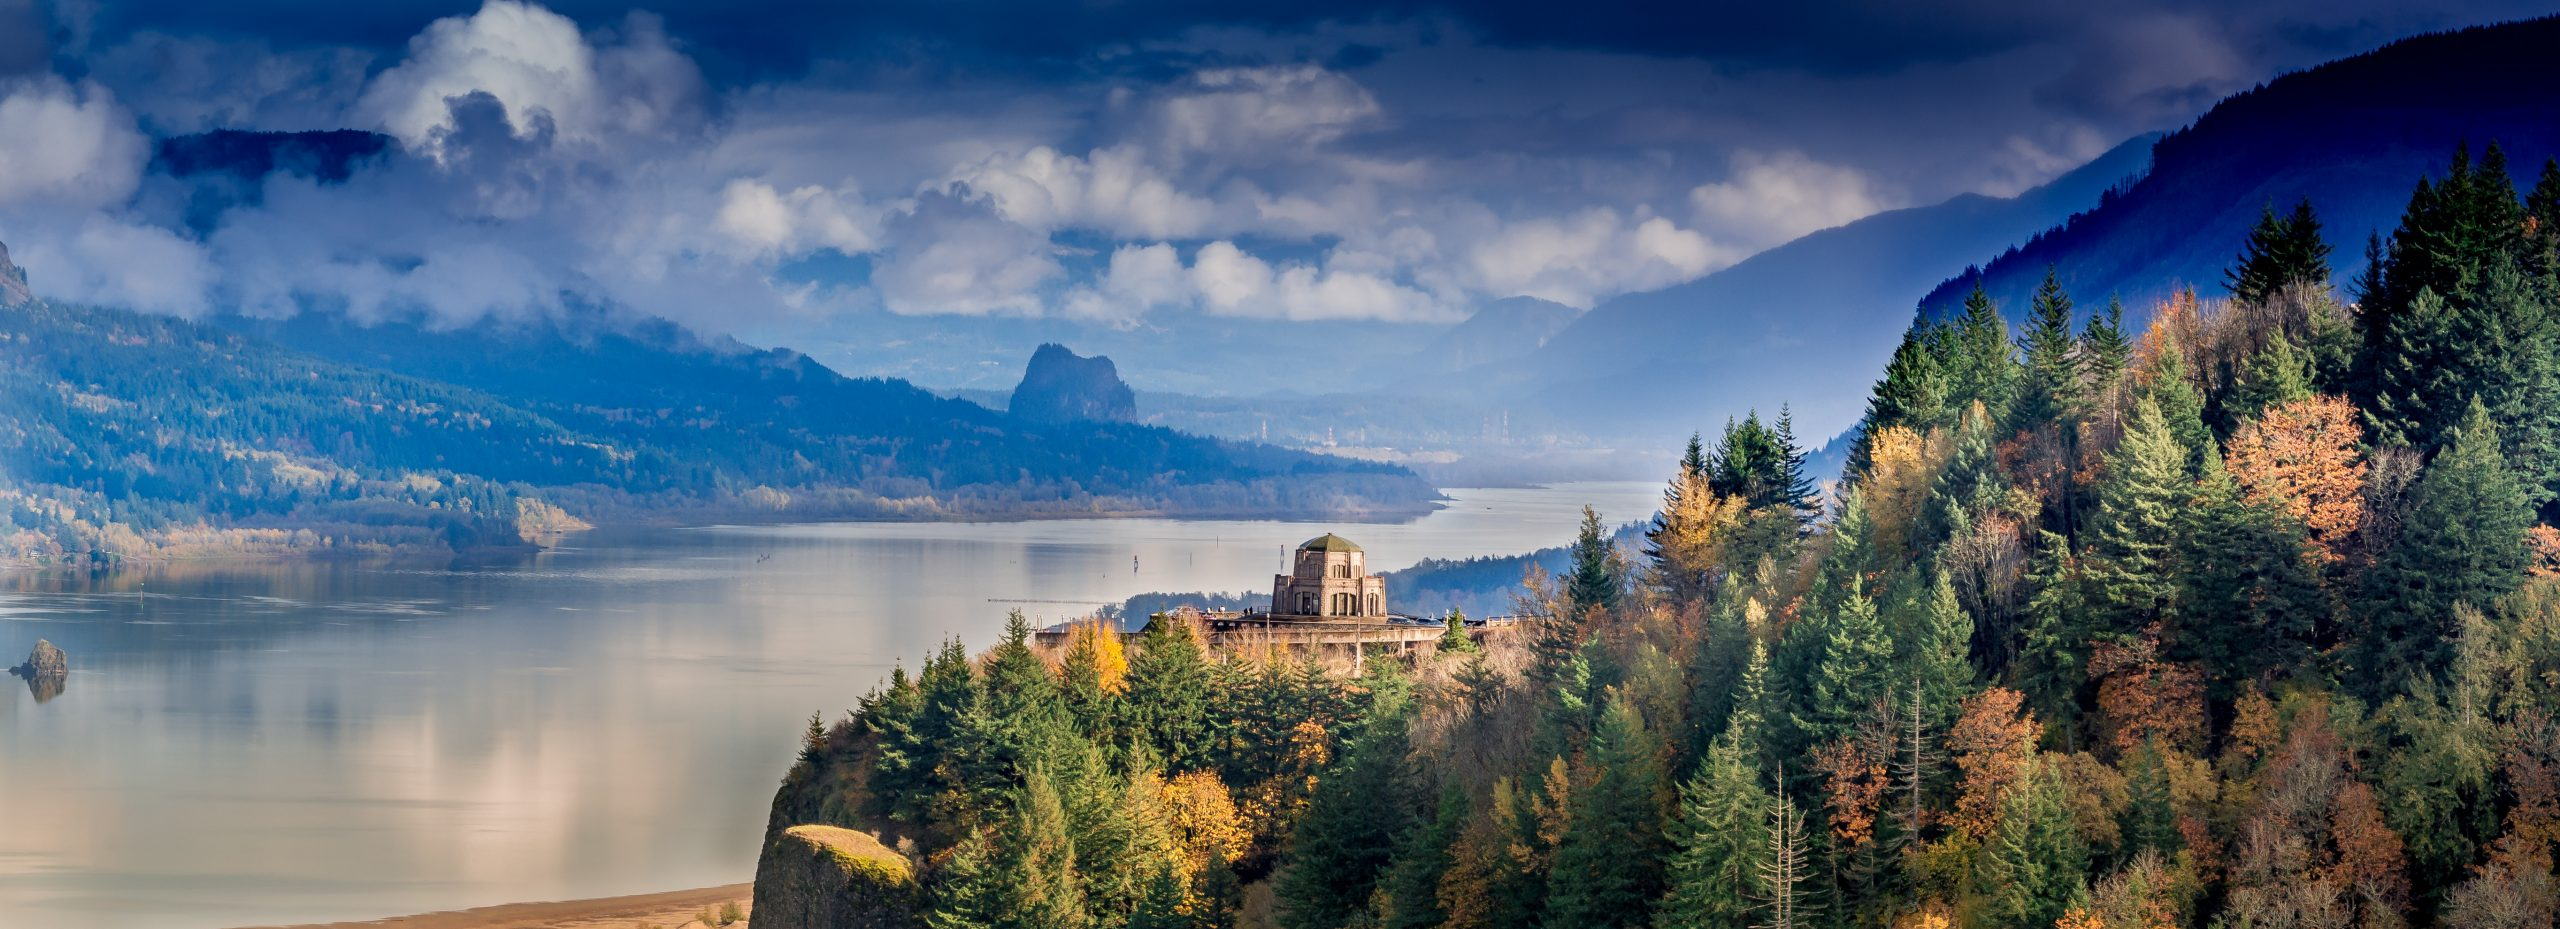 Columbia River Gorge - Best Fall Vacations in the U.S.